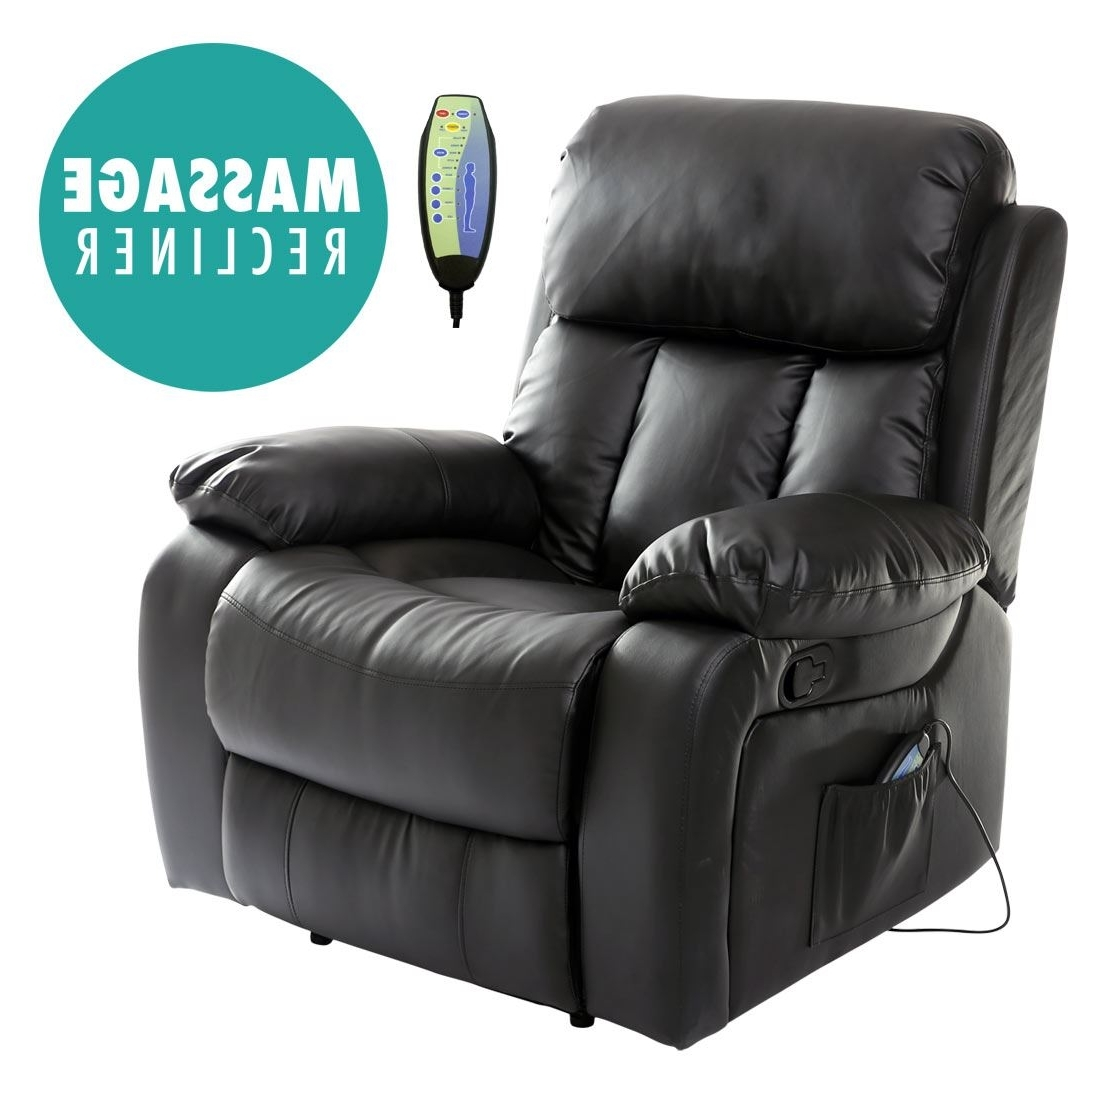 Recent Home Decor: Fetching Massage Recliner Chairs And Chester Heated For Gaming Sofa Chairs (View 14 of 15)